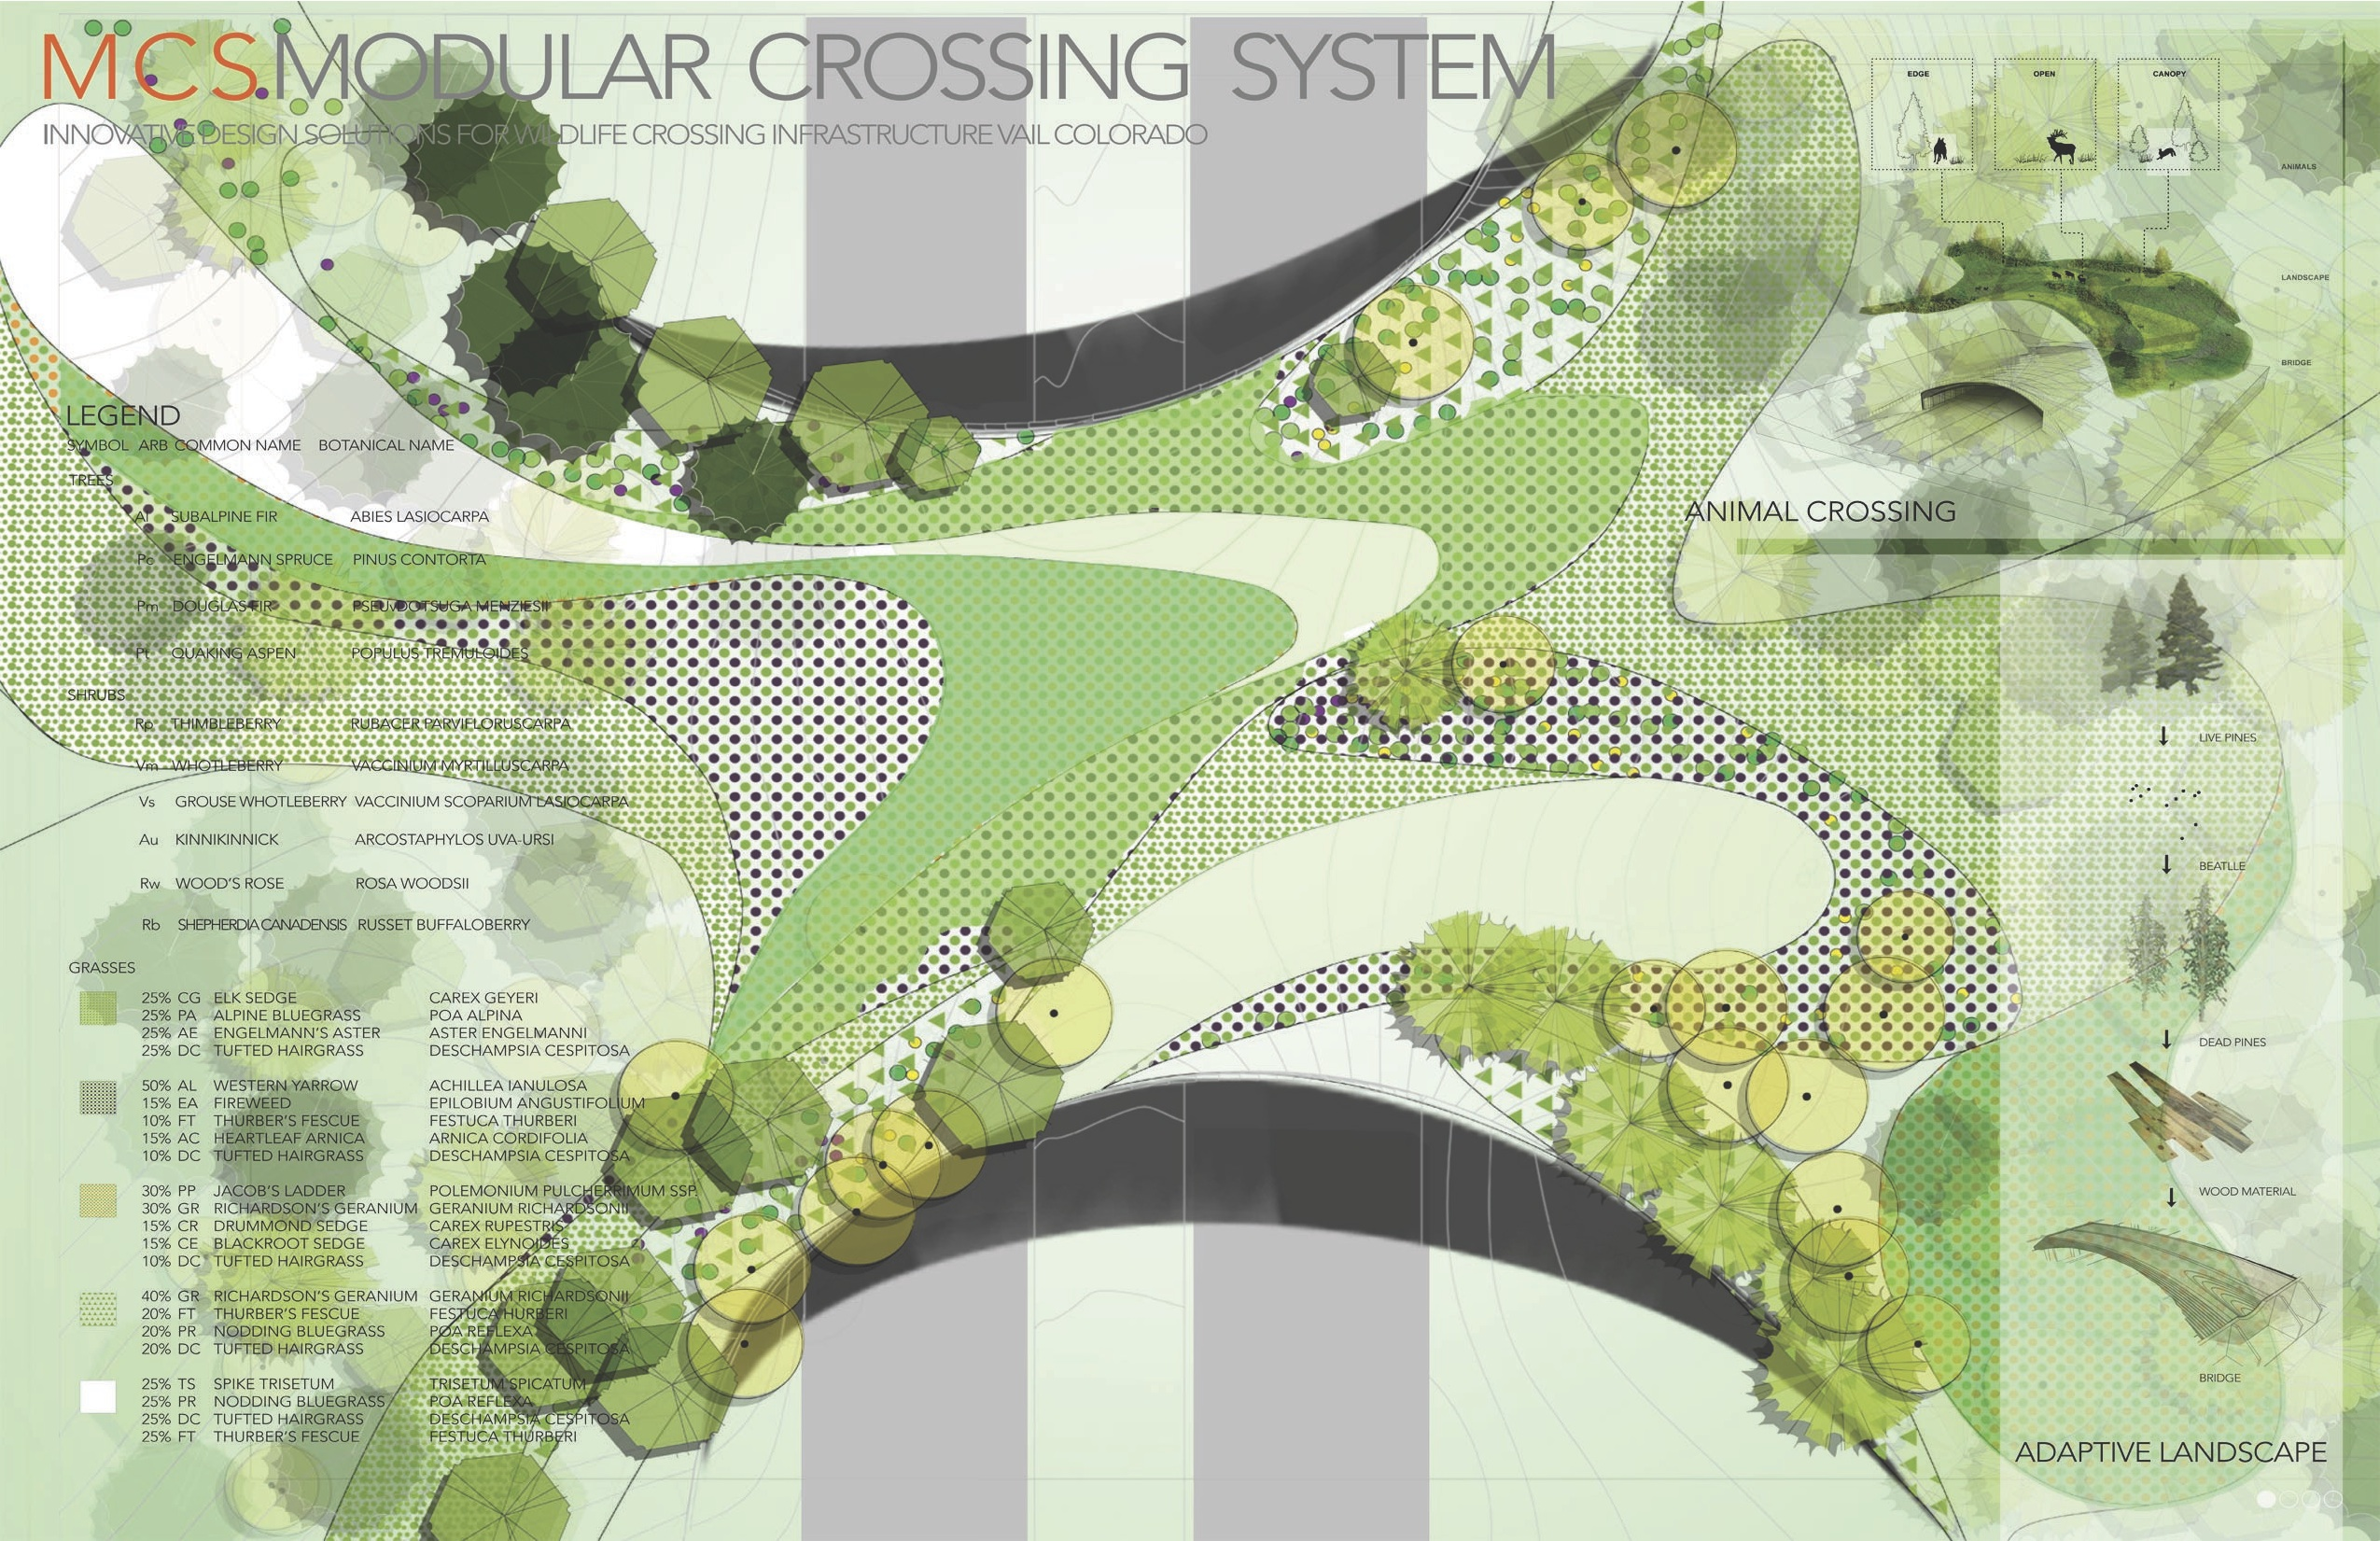 New materials wildlife crossing structures arc for Landscape design contest